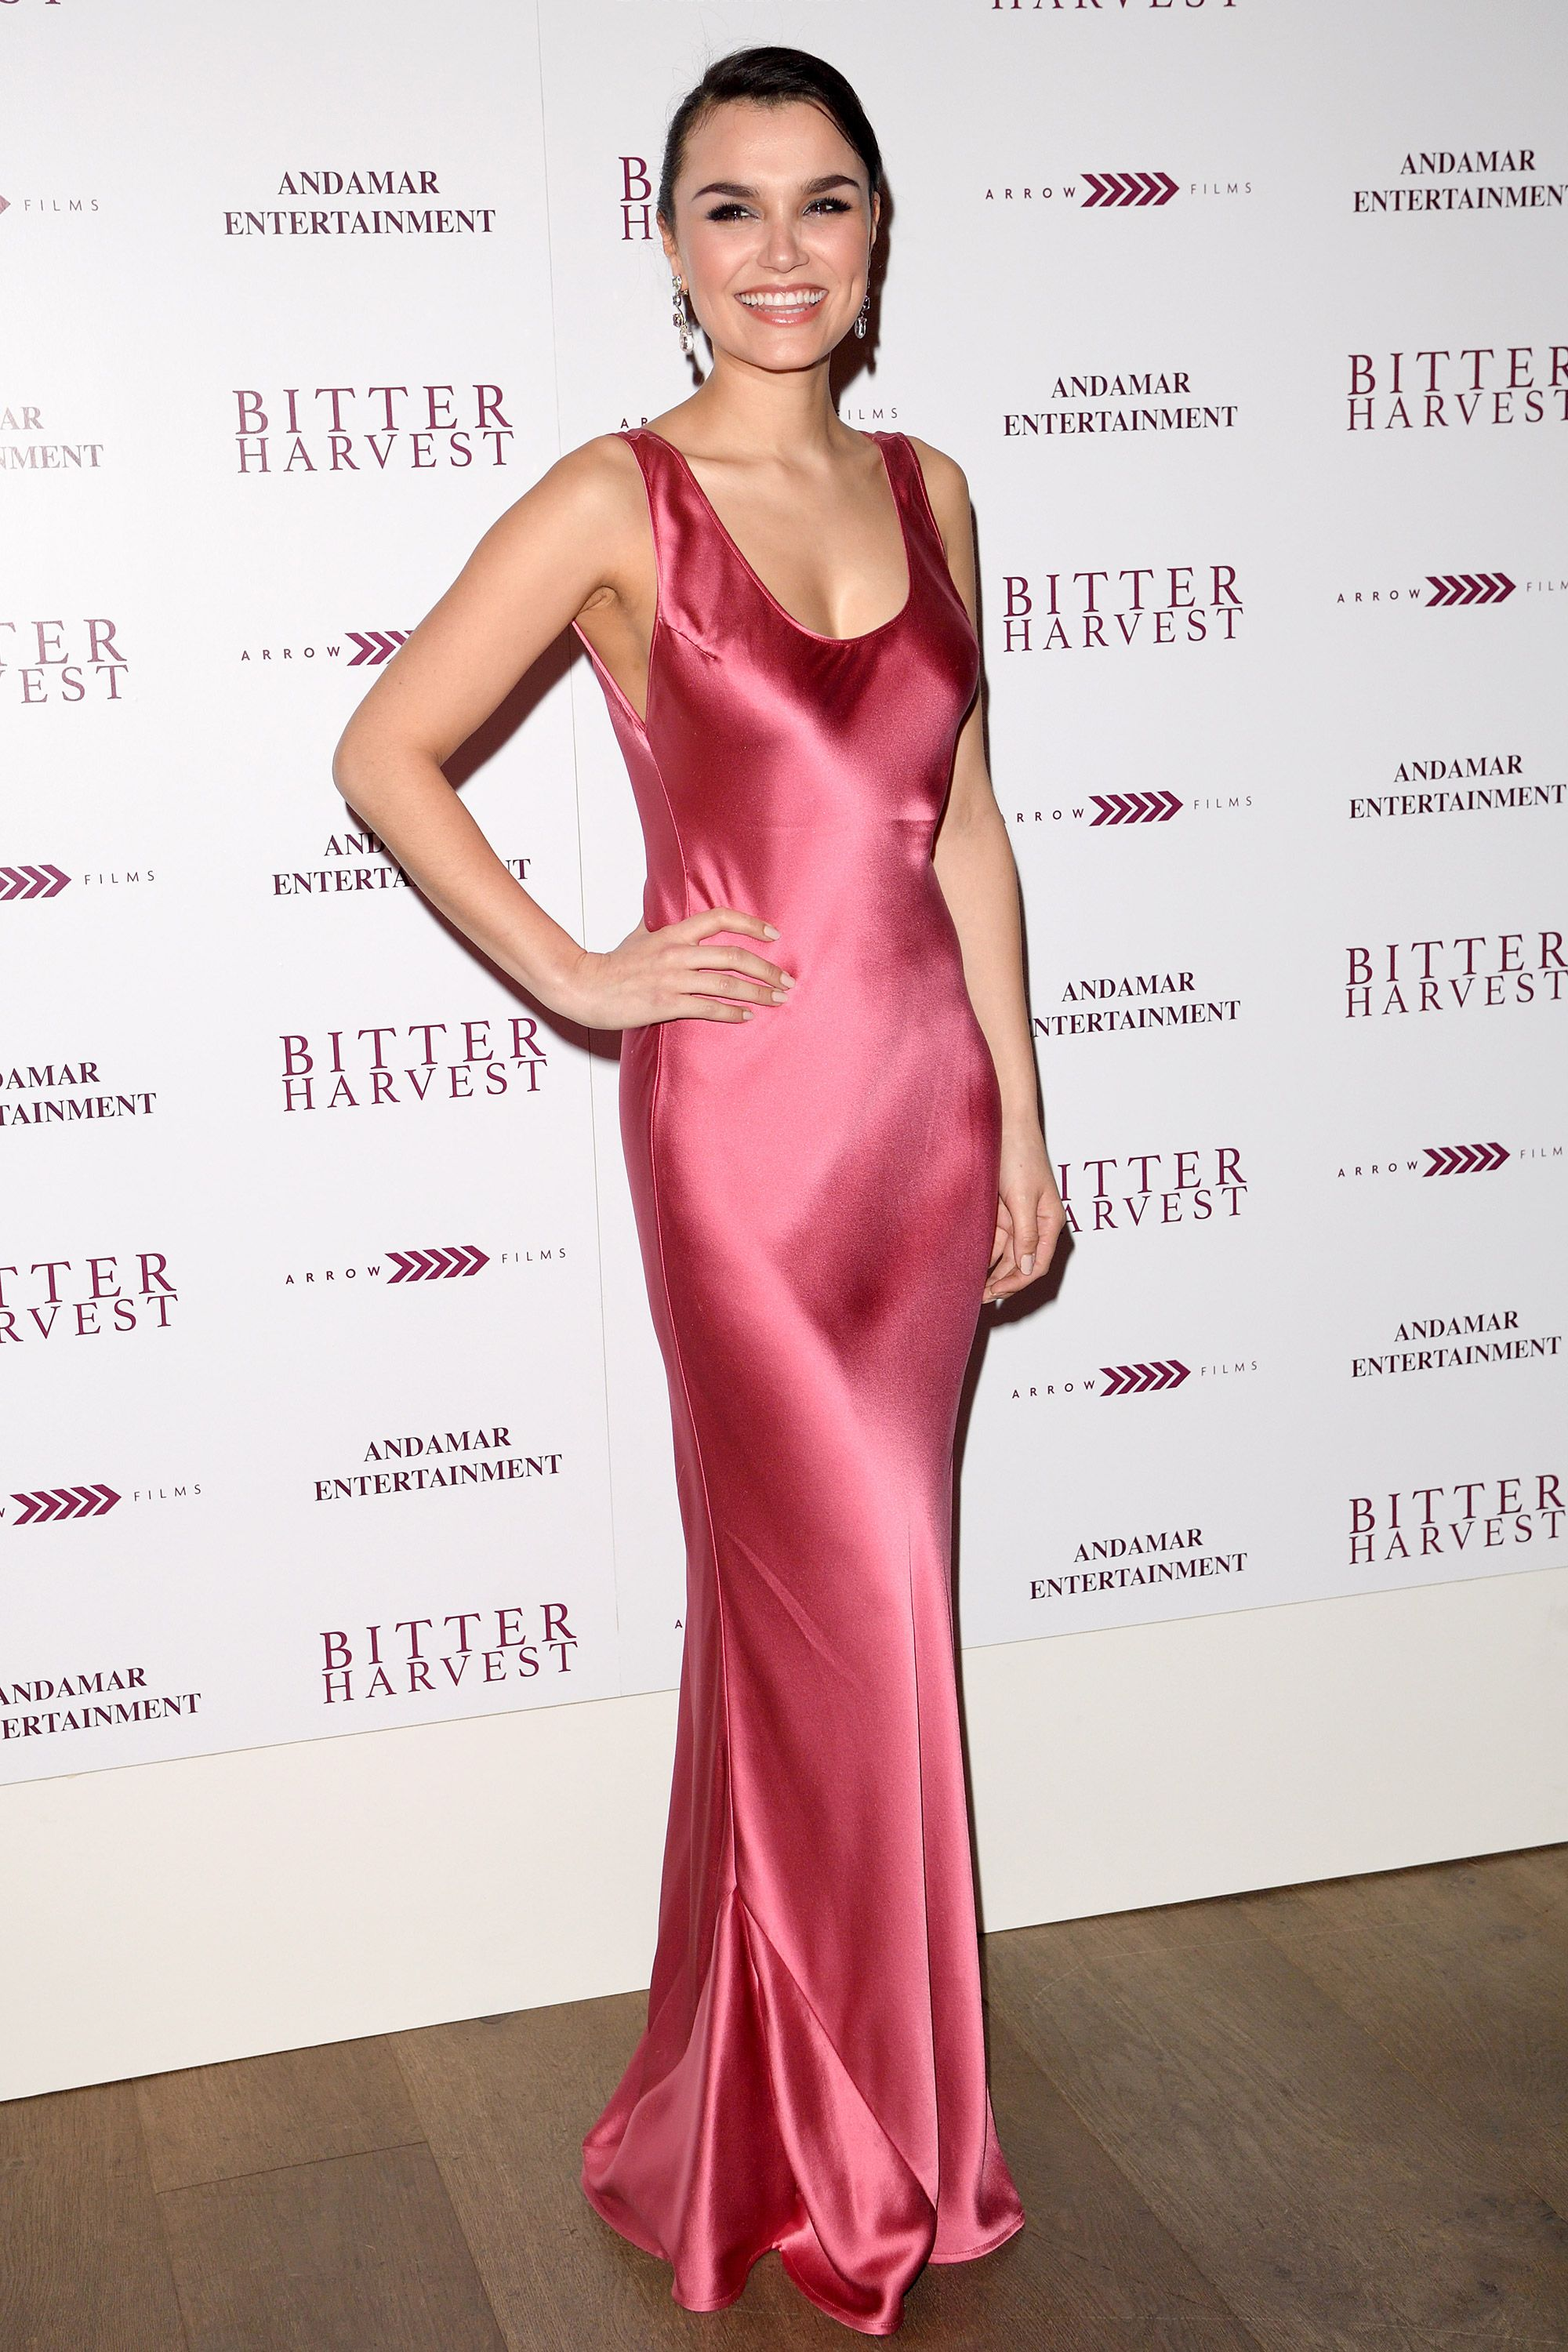 Our Favourite A-list Looks This Week